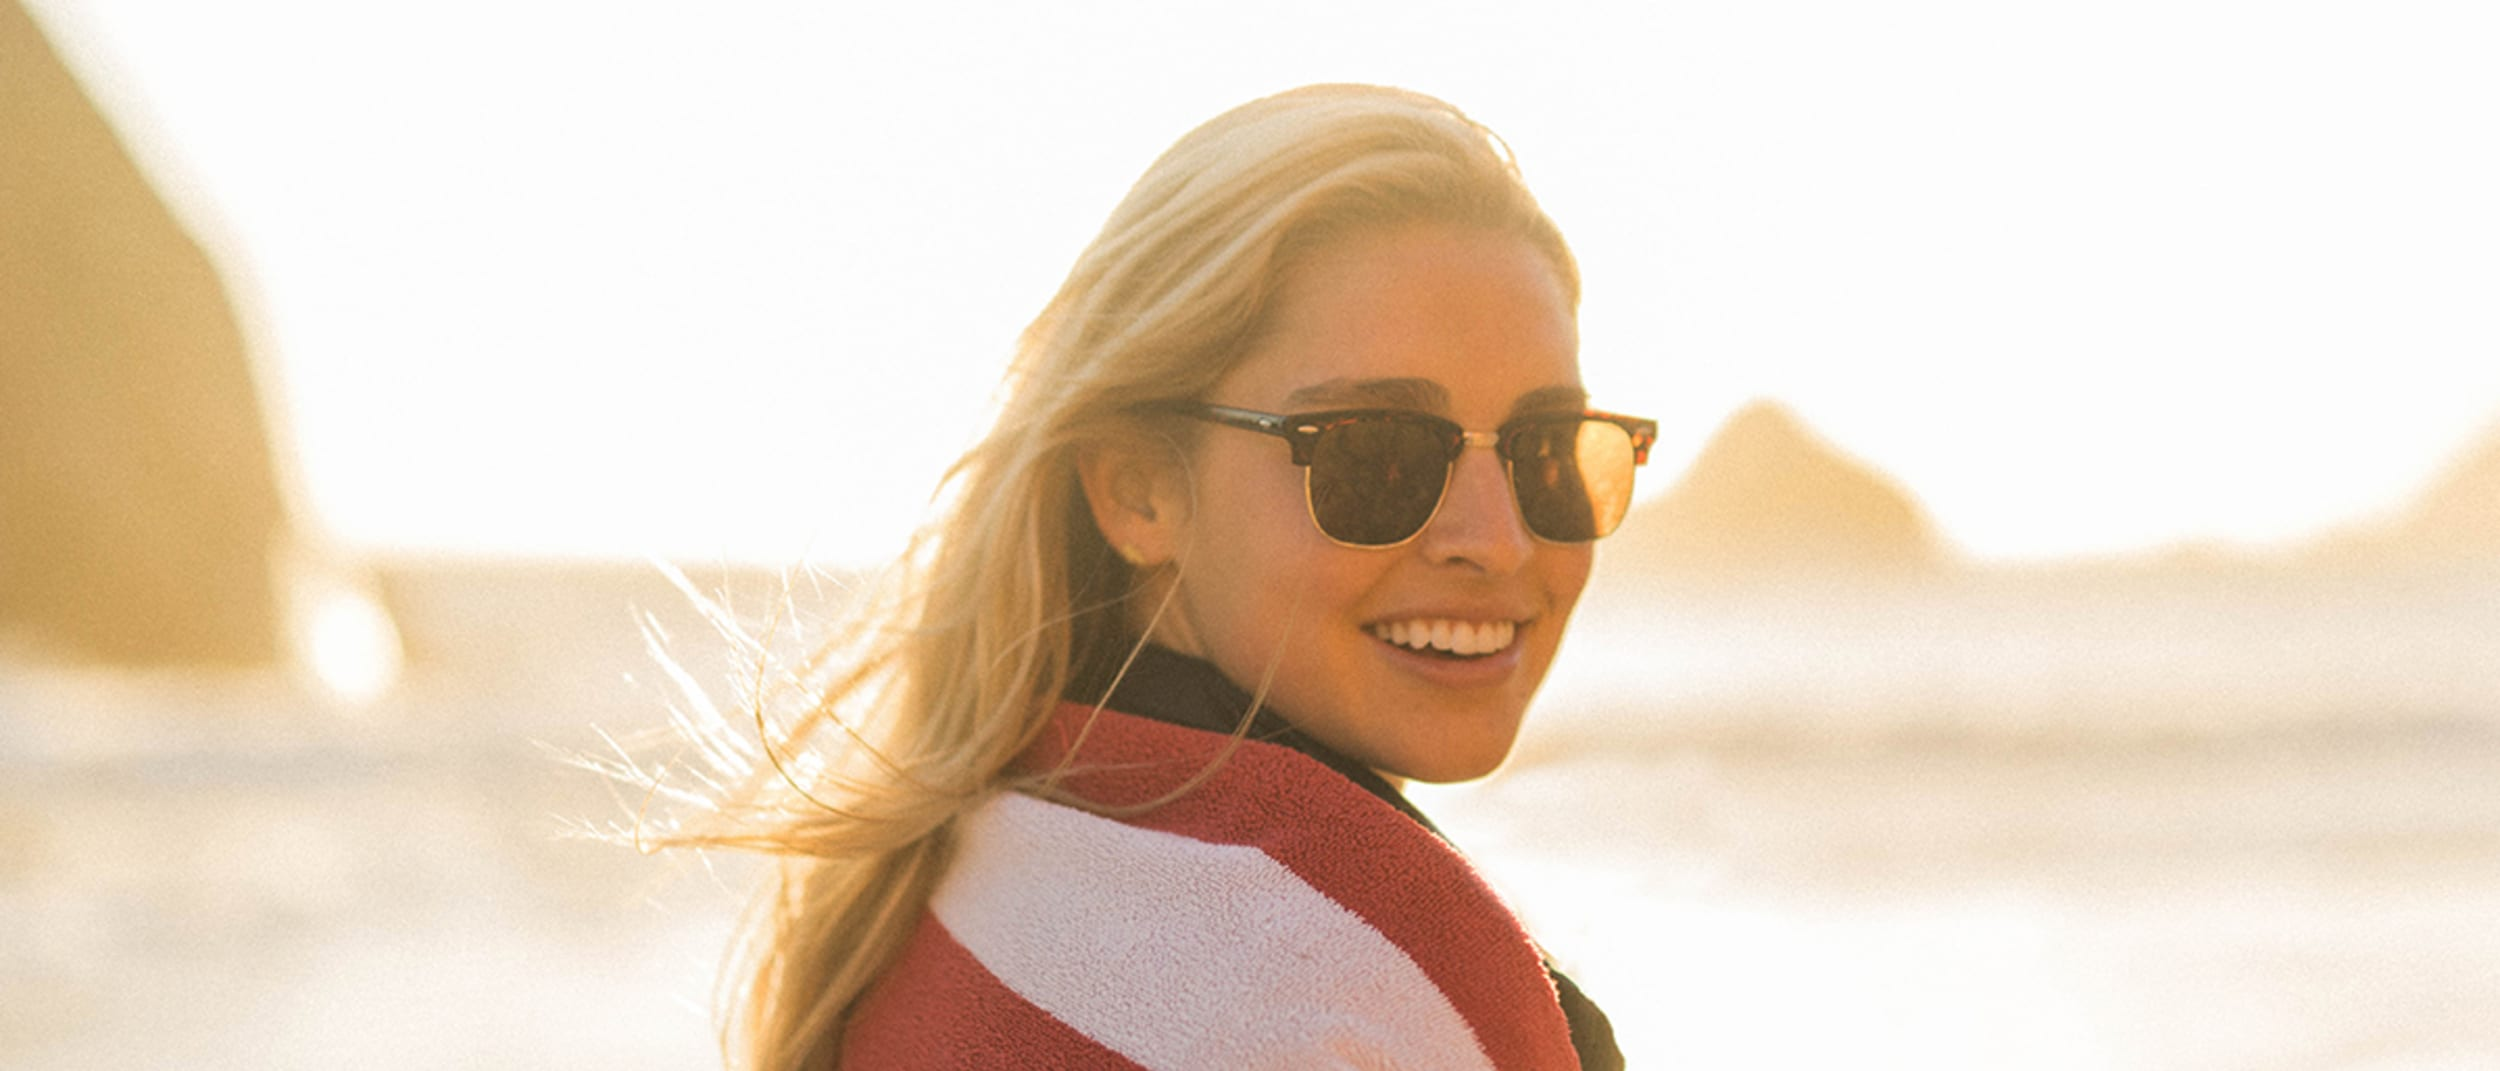 OPSM: $100 off Ray-Ban Frame + Lenses